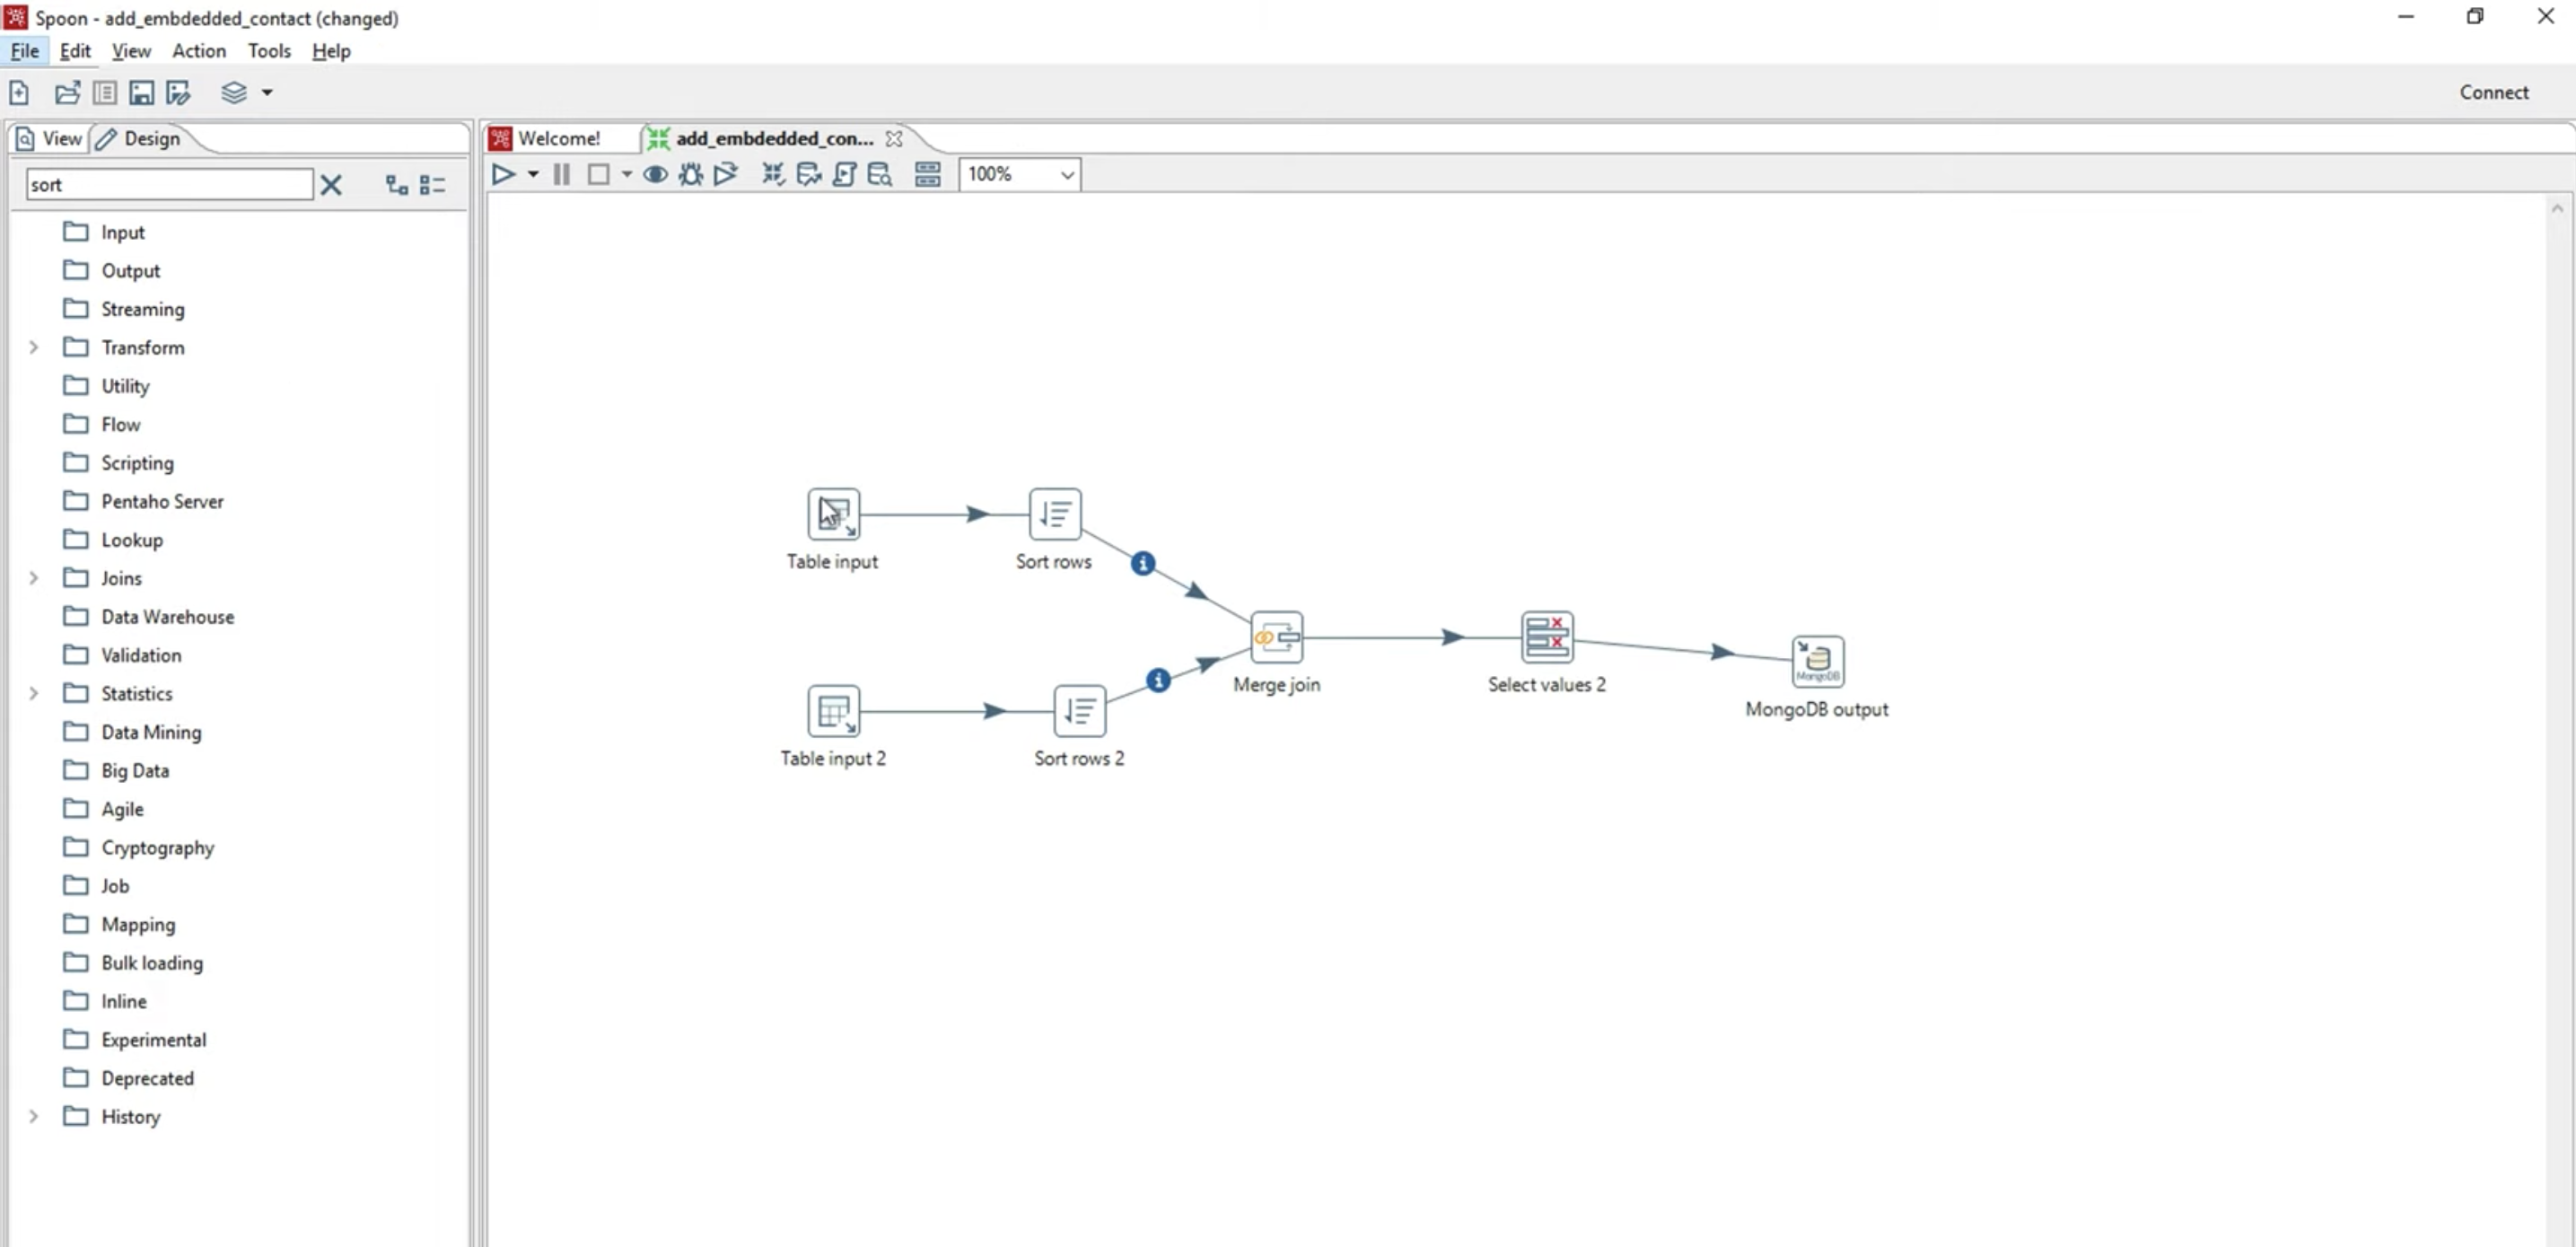 Workflow in Pentaho